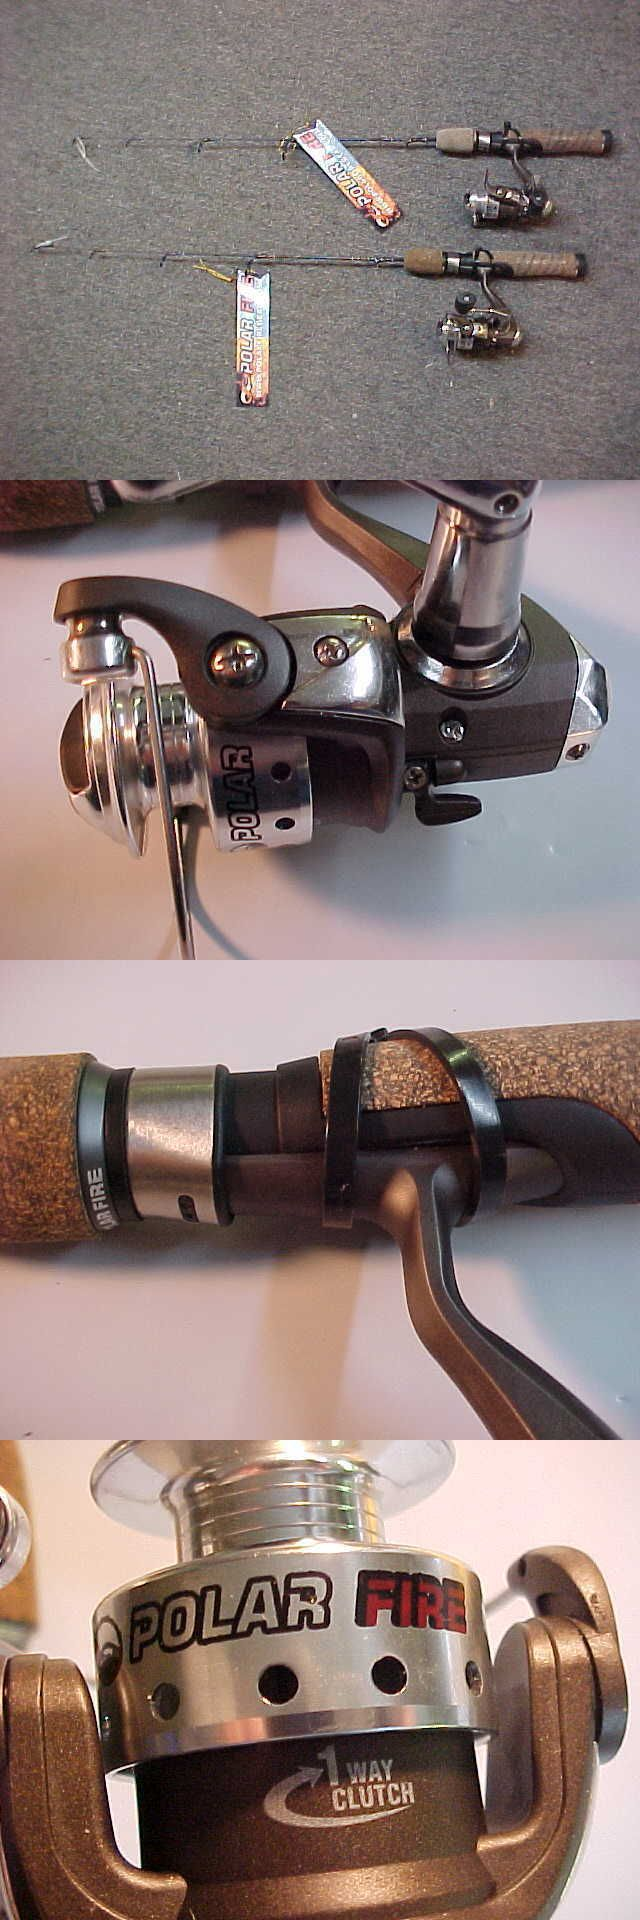 Ice Fishing Rods 179947: 2 New Polar Fire Professional Tx Ice Fishing Combos 24 Ultra Light 4 Bb -> BUY IT NOW ONLY: $54.95 on eBay!